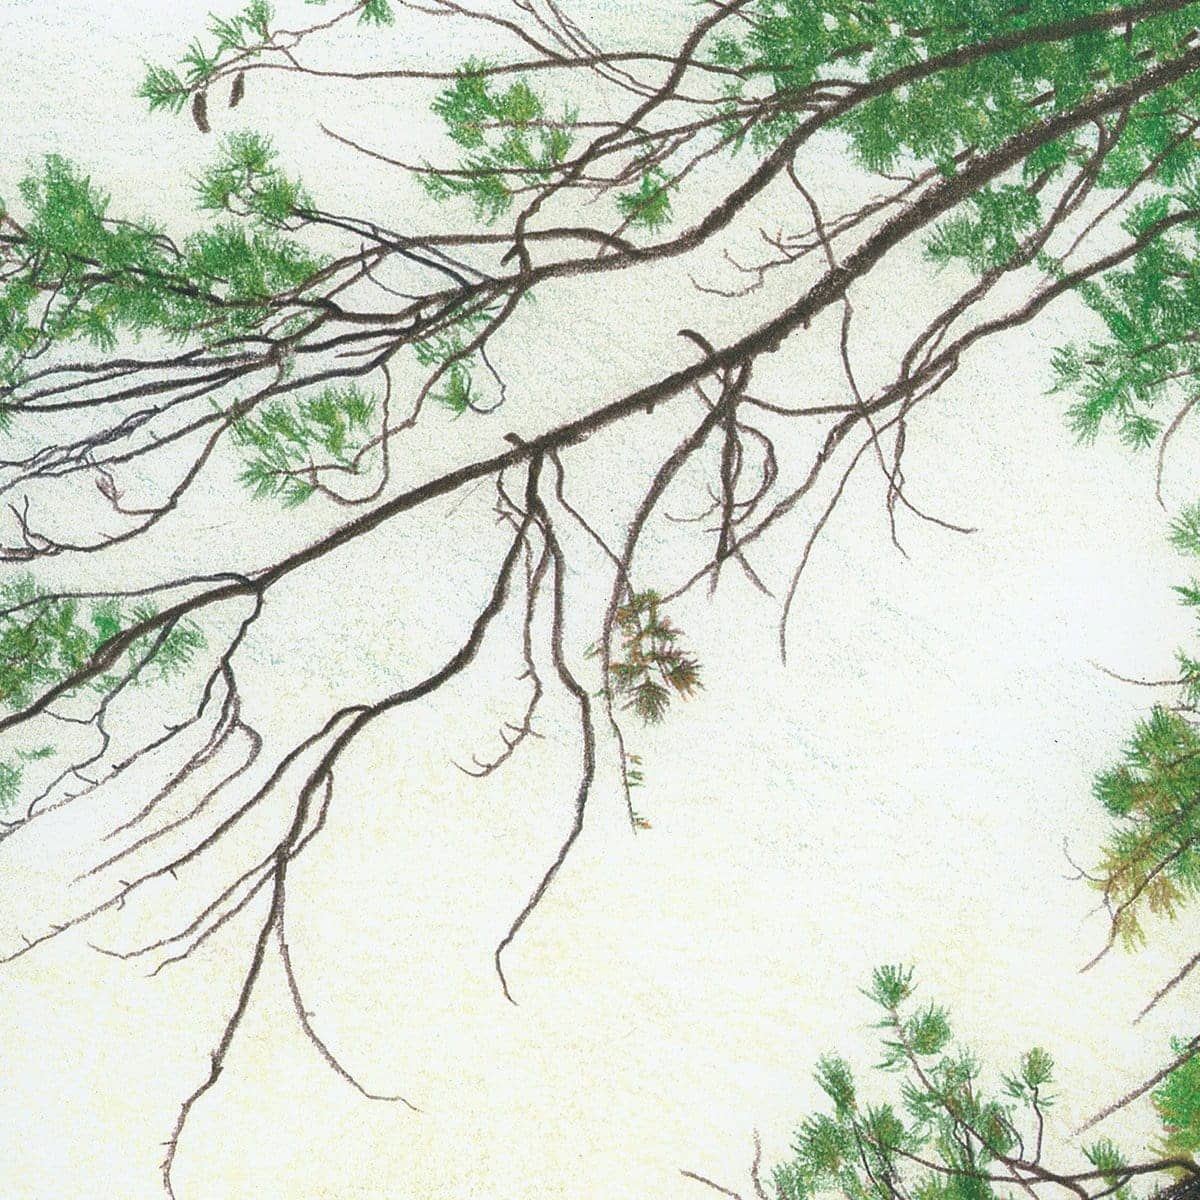 Eastern White Pine - Art Print by Glen Loates from the Glen Loates Store